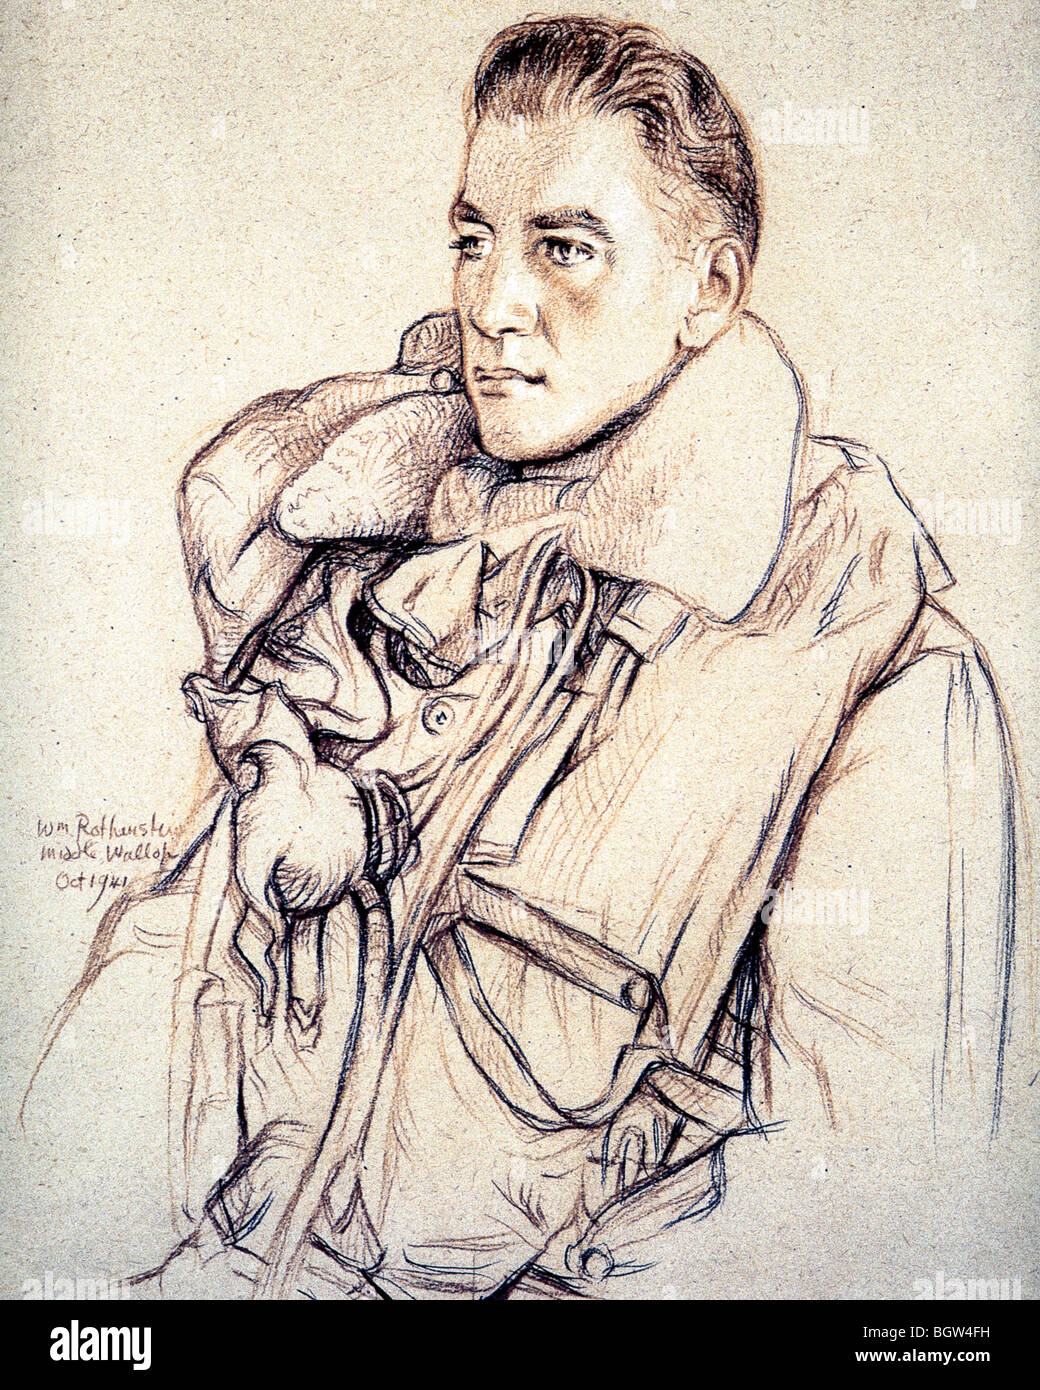 ROBERT DALTON RAF officer who fought in the Battle of Britain - Stock Image